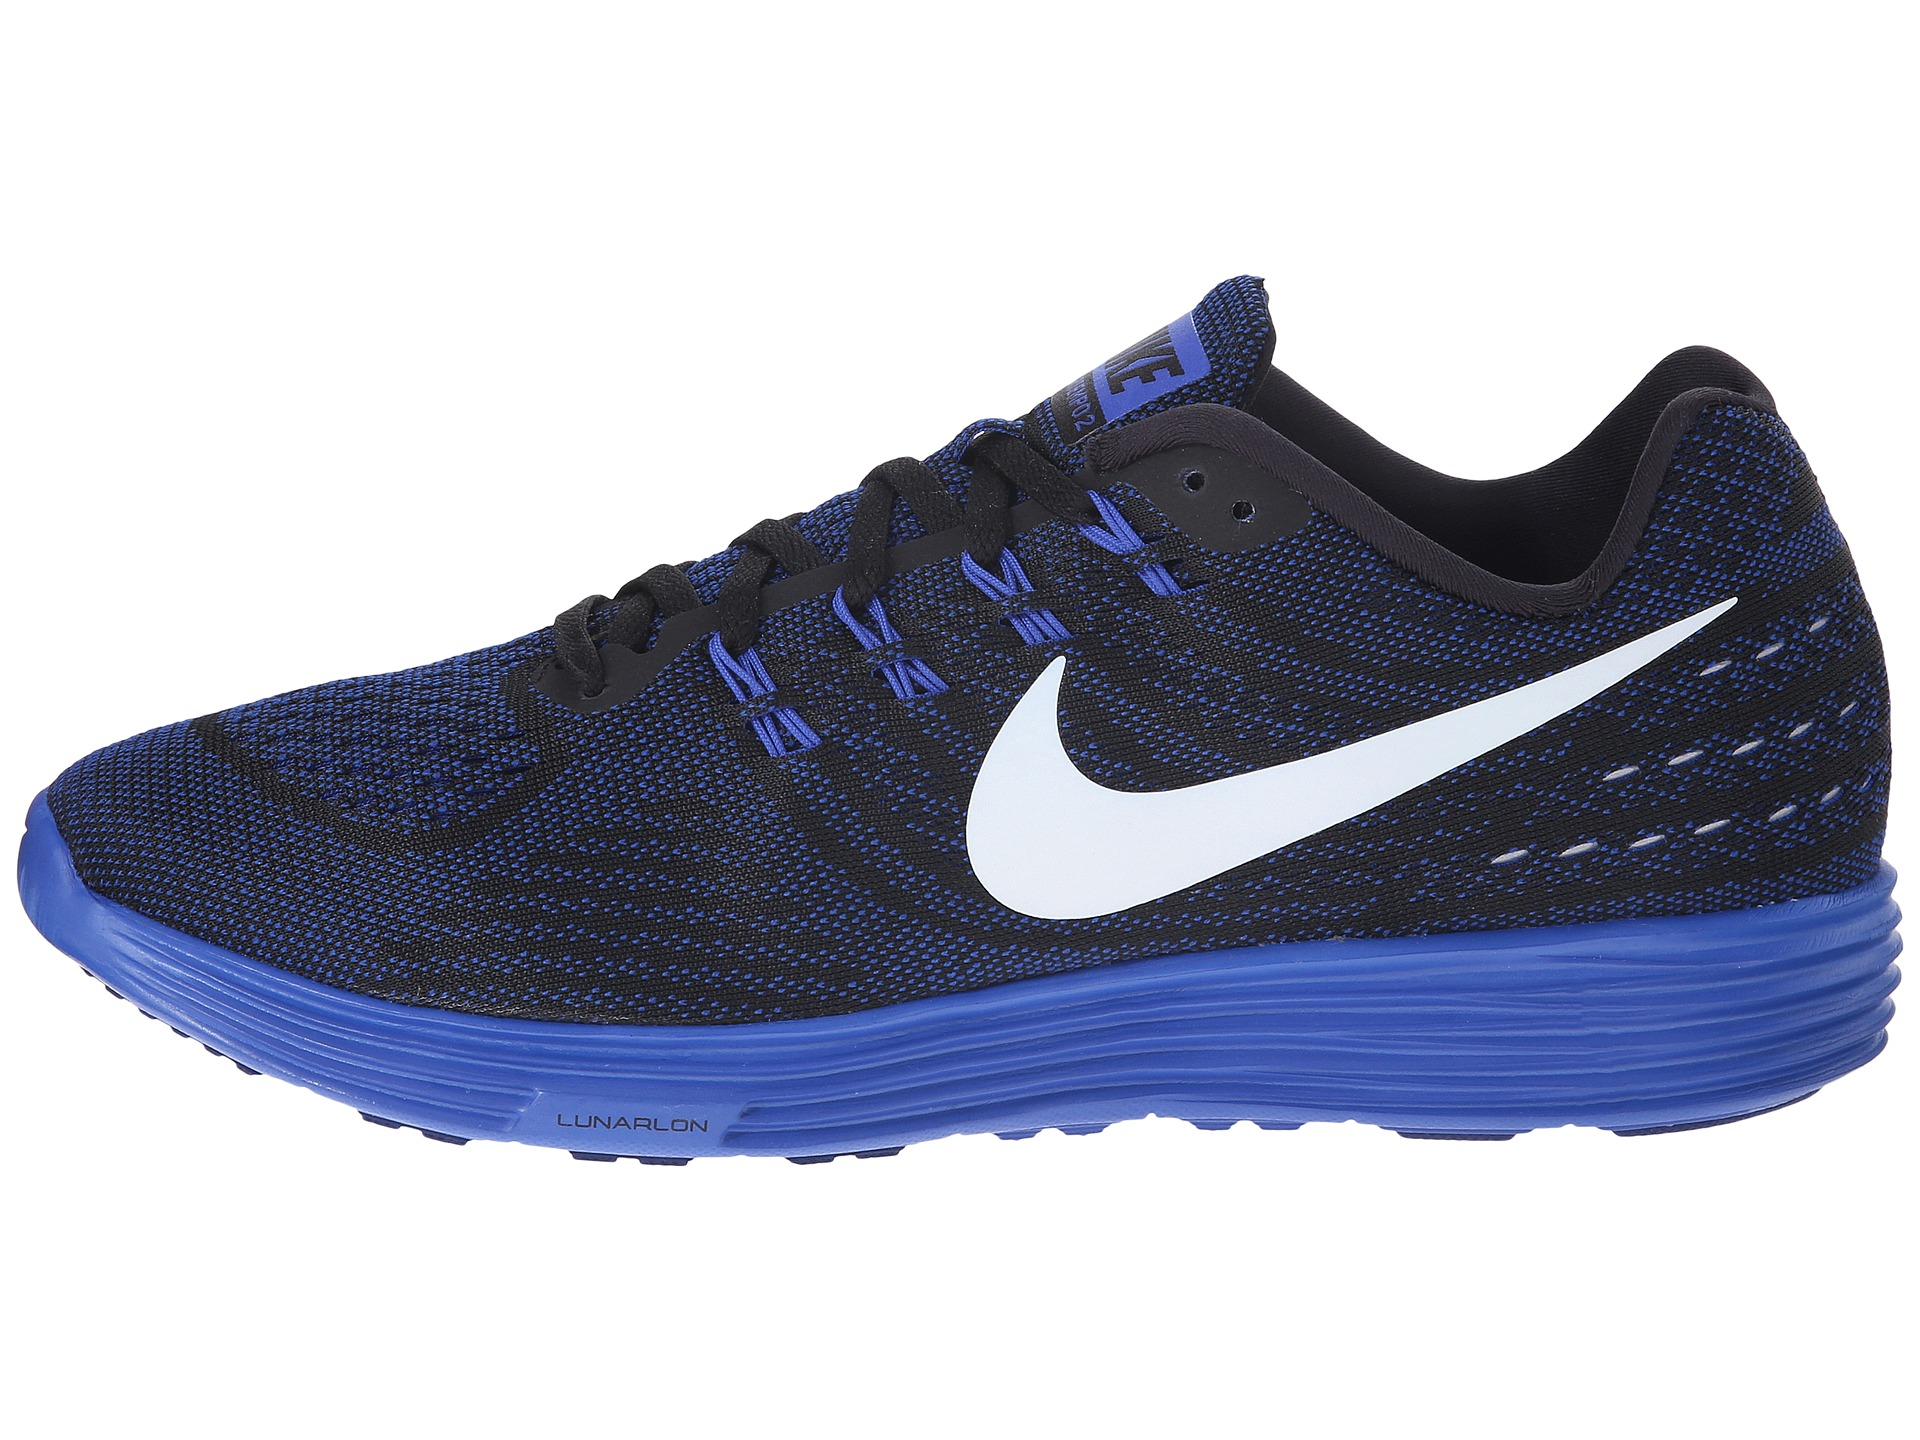 240d67cd7b8 ... purchase lyst nike lunartempo 2 in blue for men afb72 a74b4